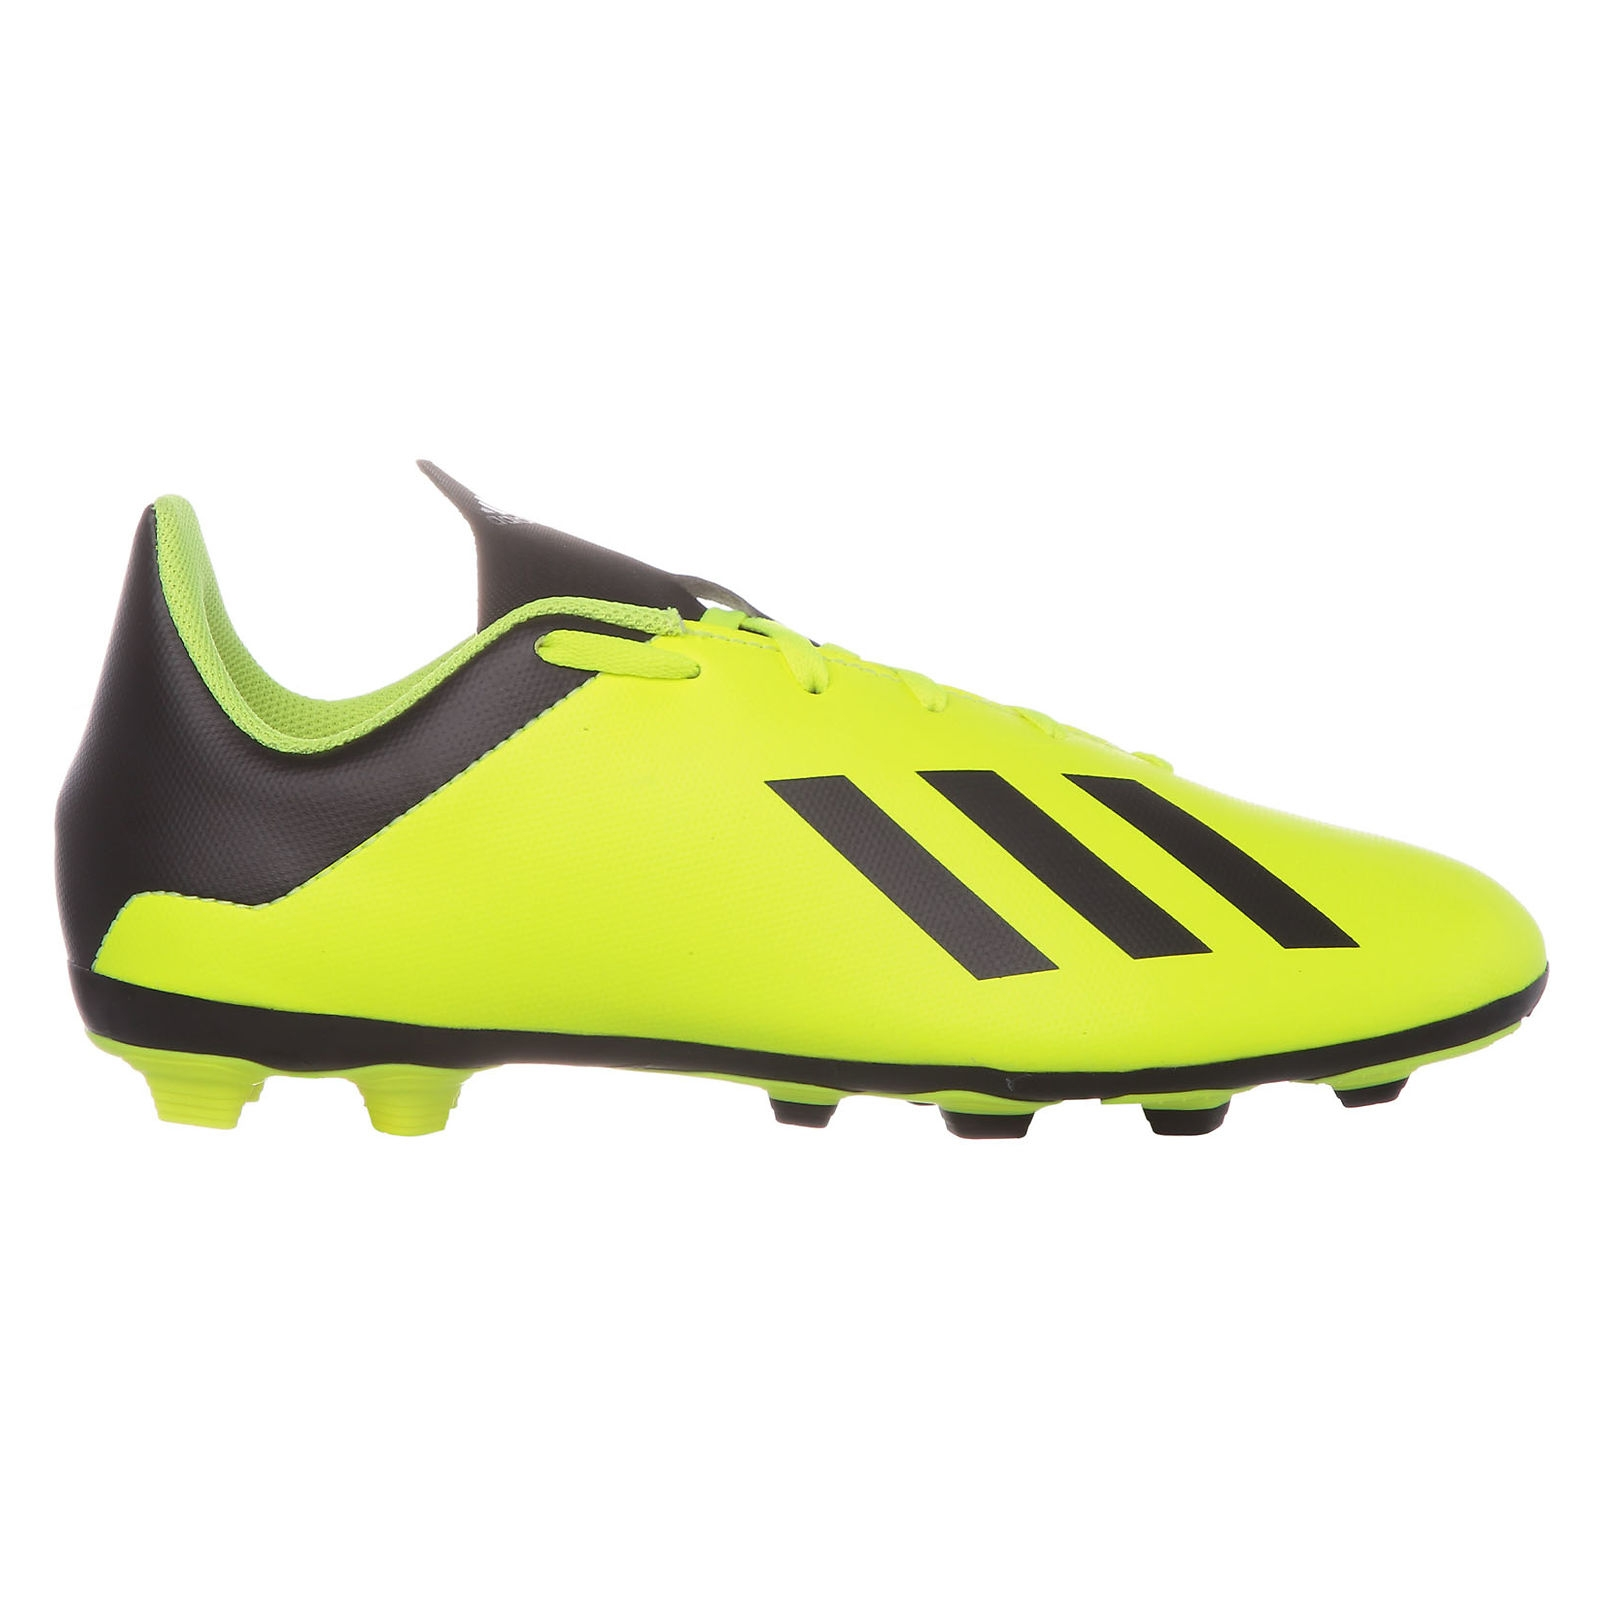 pre order best price new arrivals Adidas X 18.4 FxG Junior Football Boots